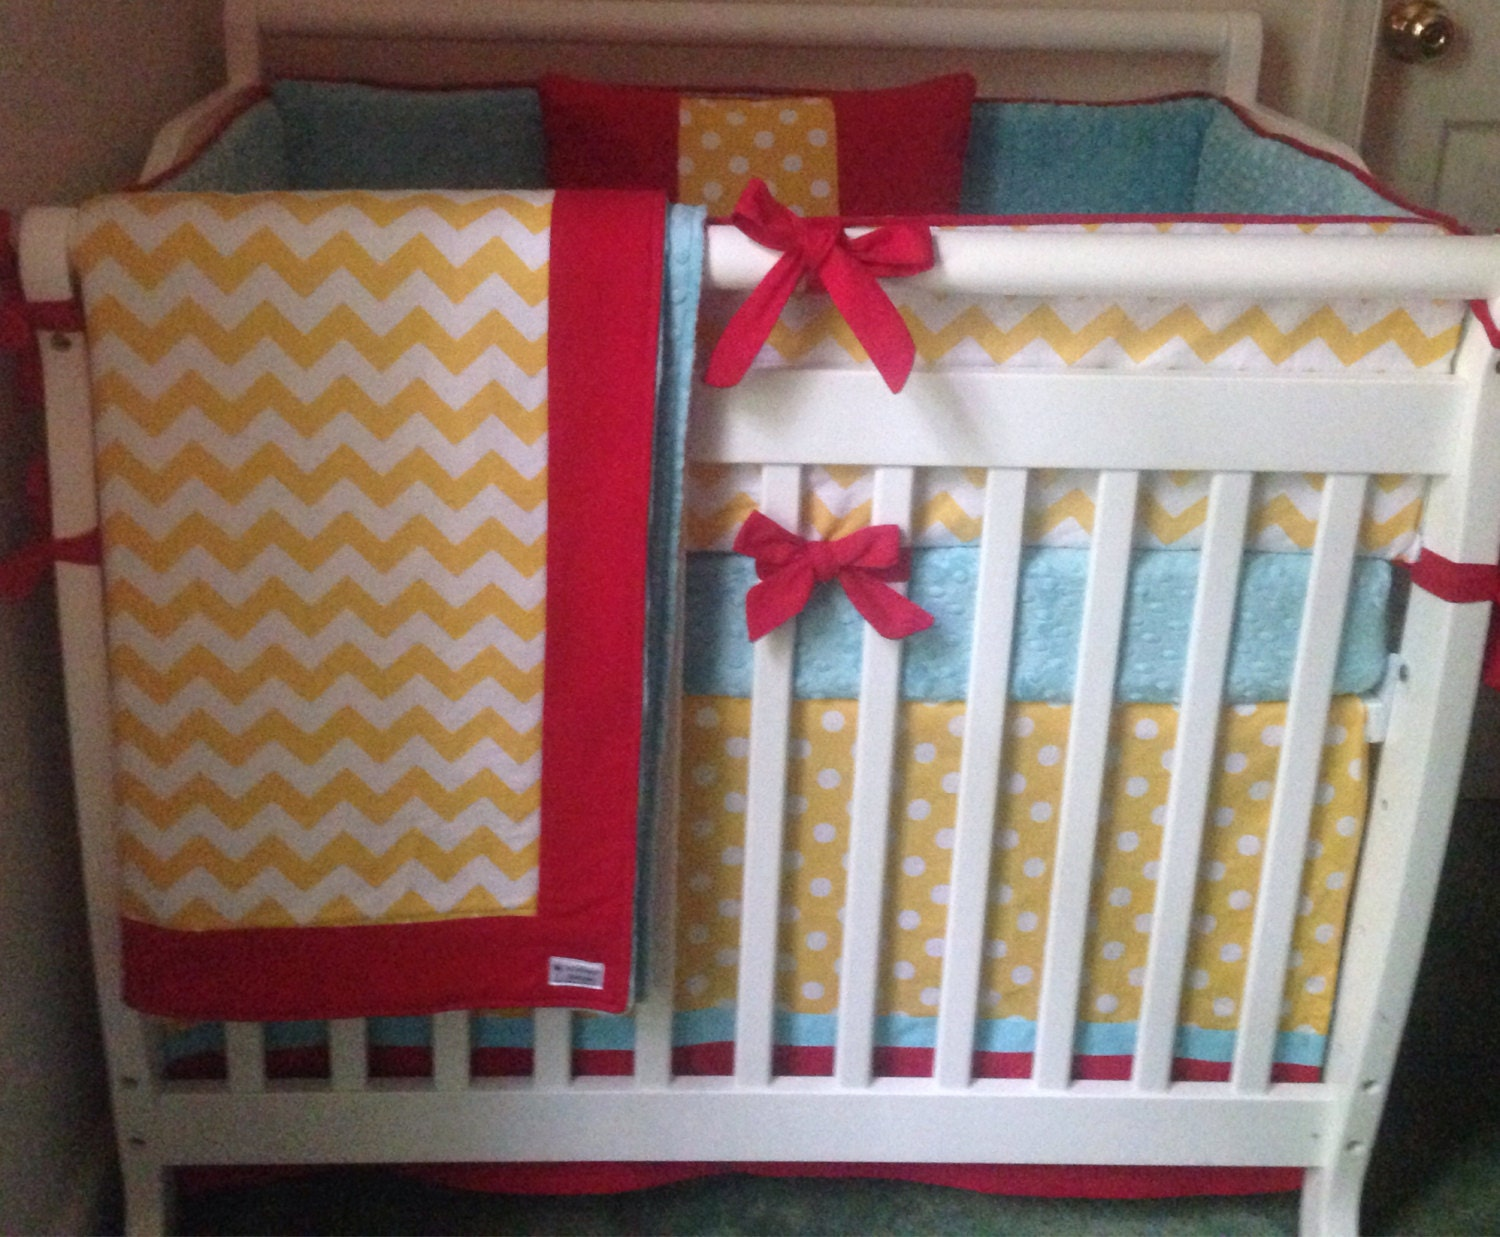 mini crib bedding yellow aqua red by butterbeansboutique on etsy. Black Bedroom Furniture Sets. Home Design Ideas